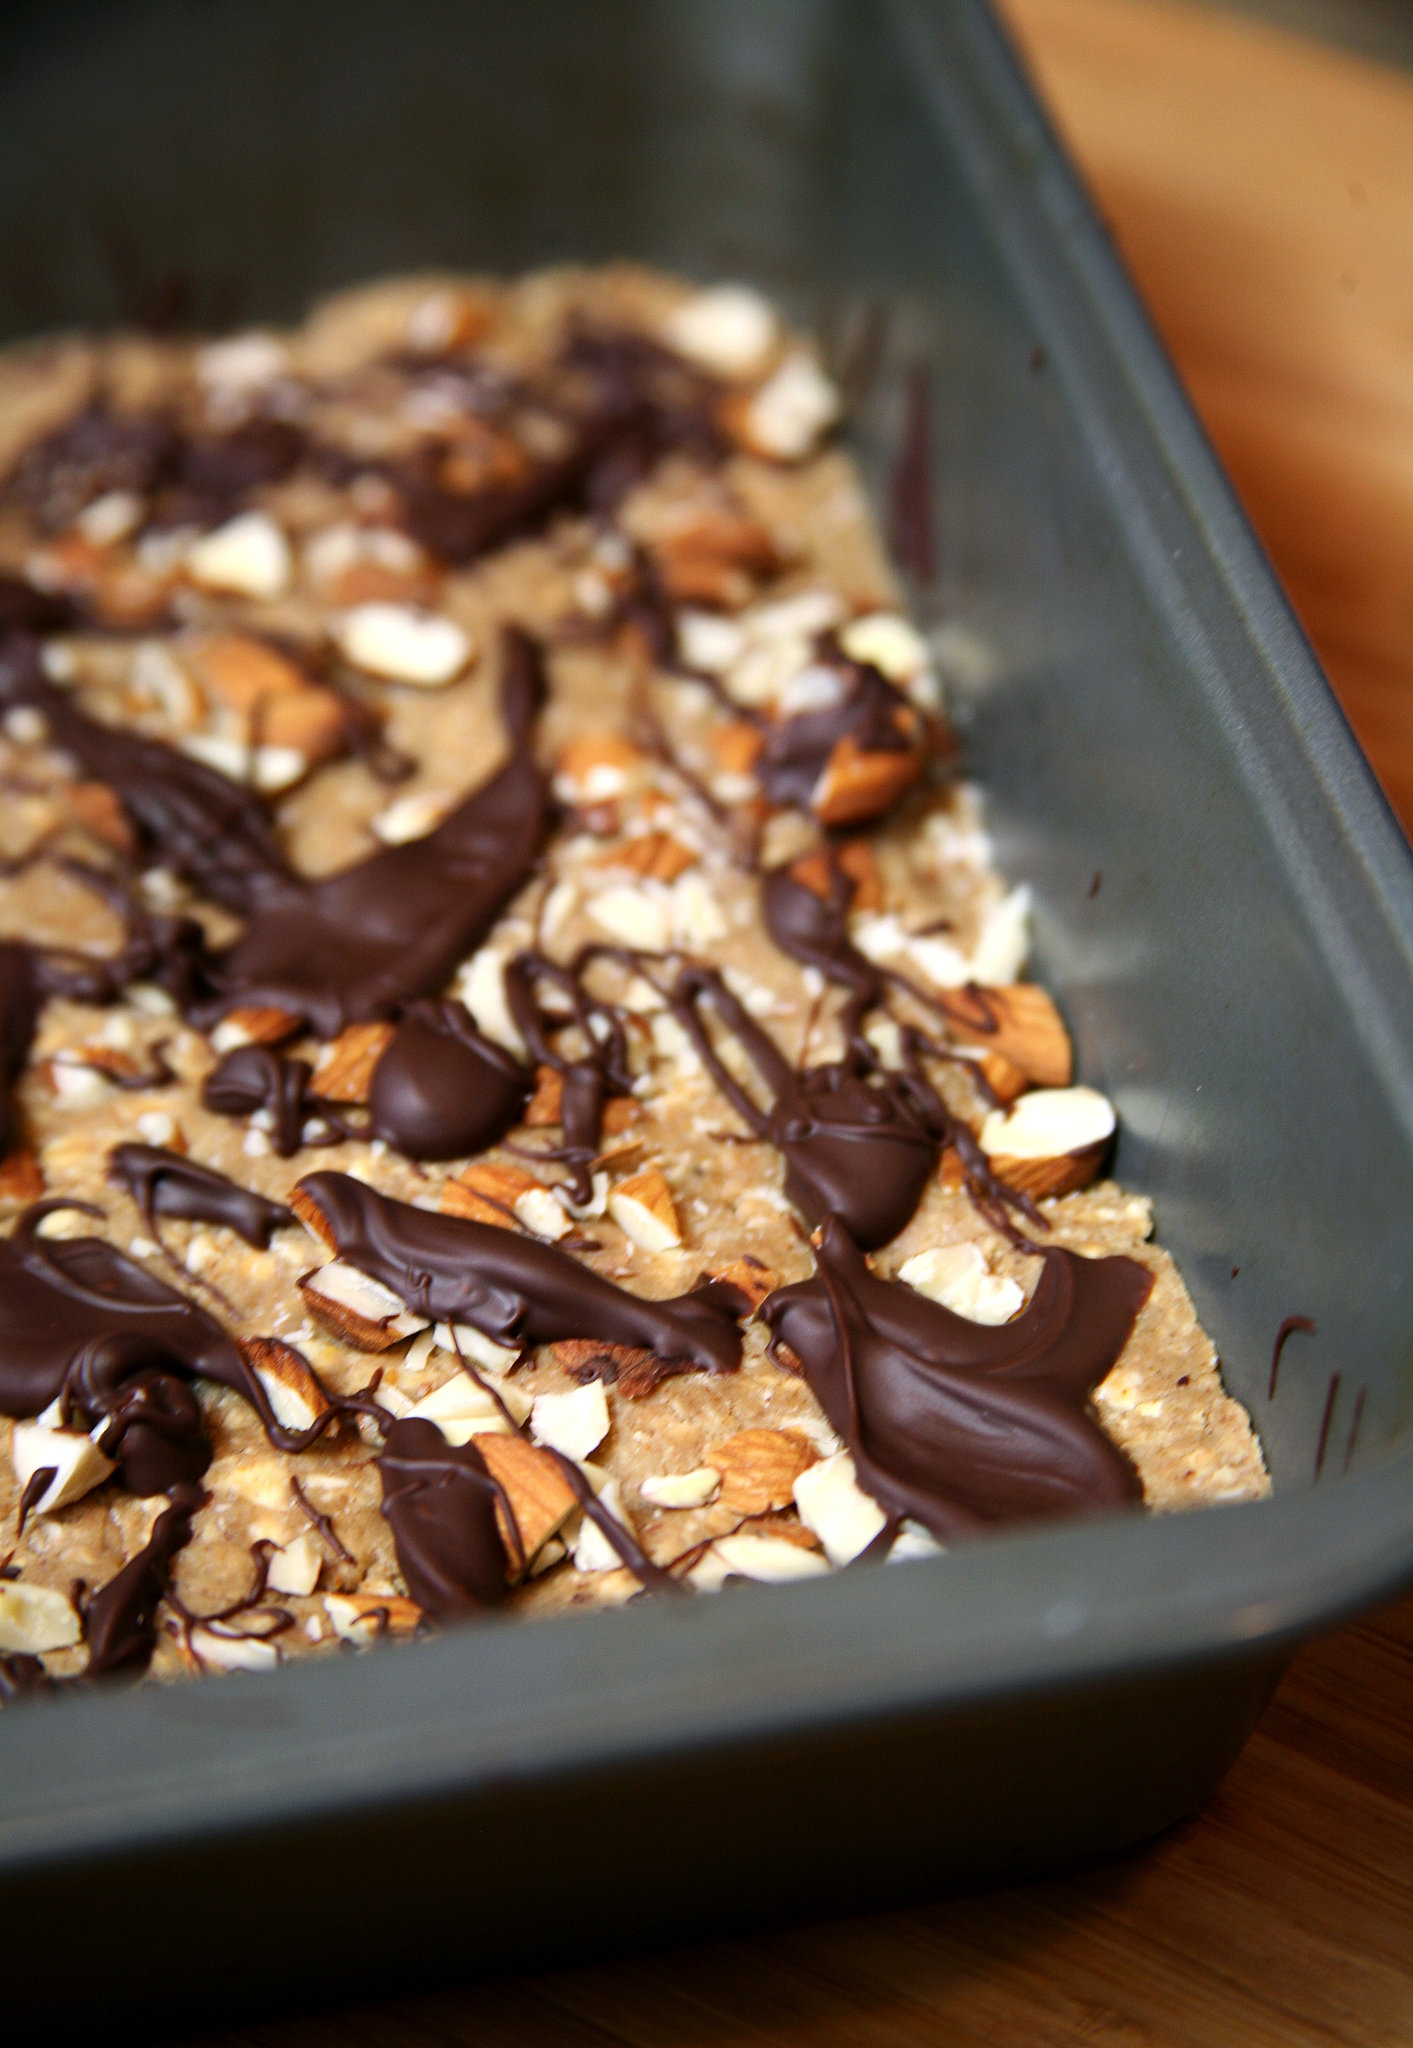 Vegan Protein Bar With Chocolate Popsugar Fitness Australia